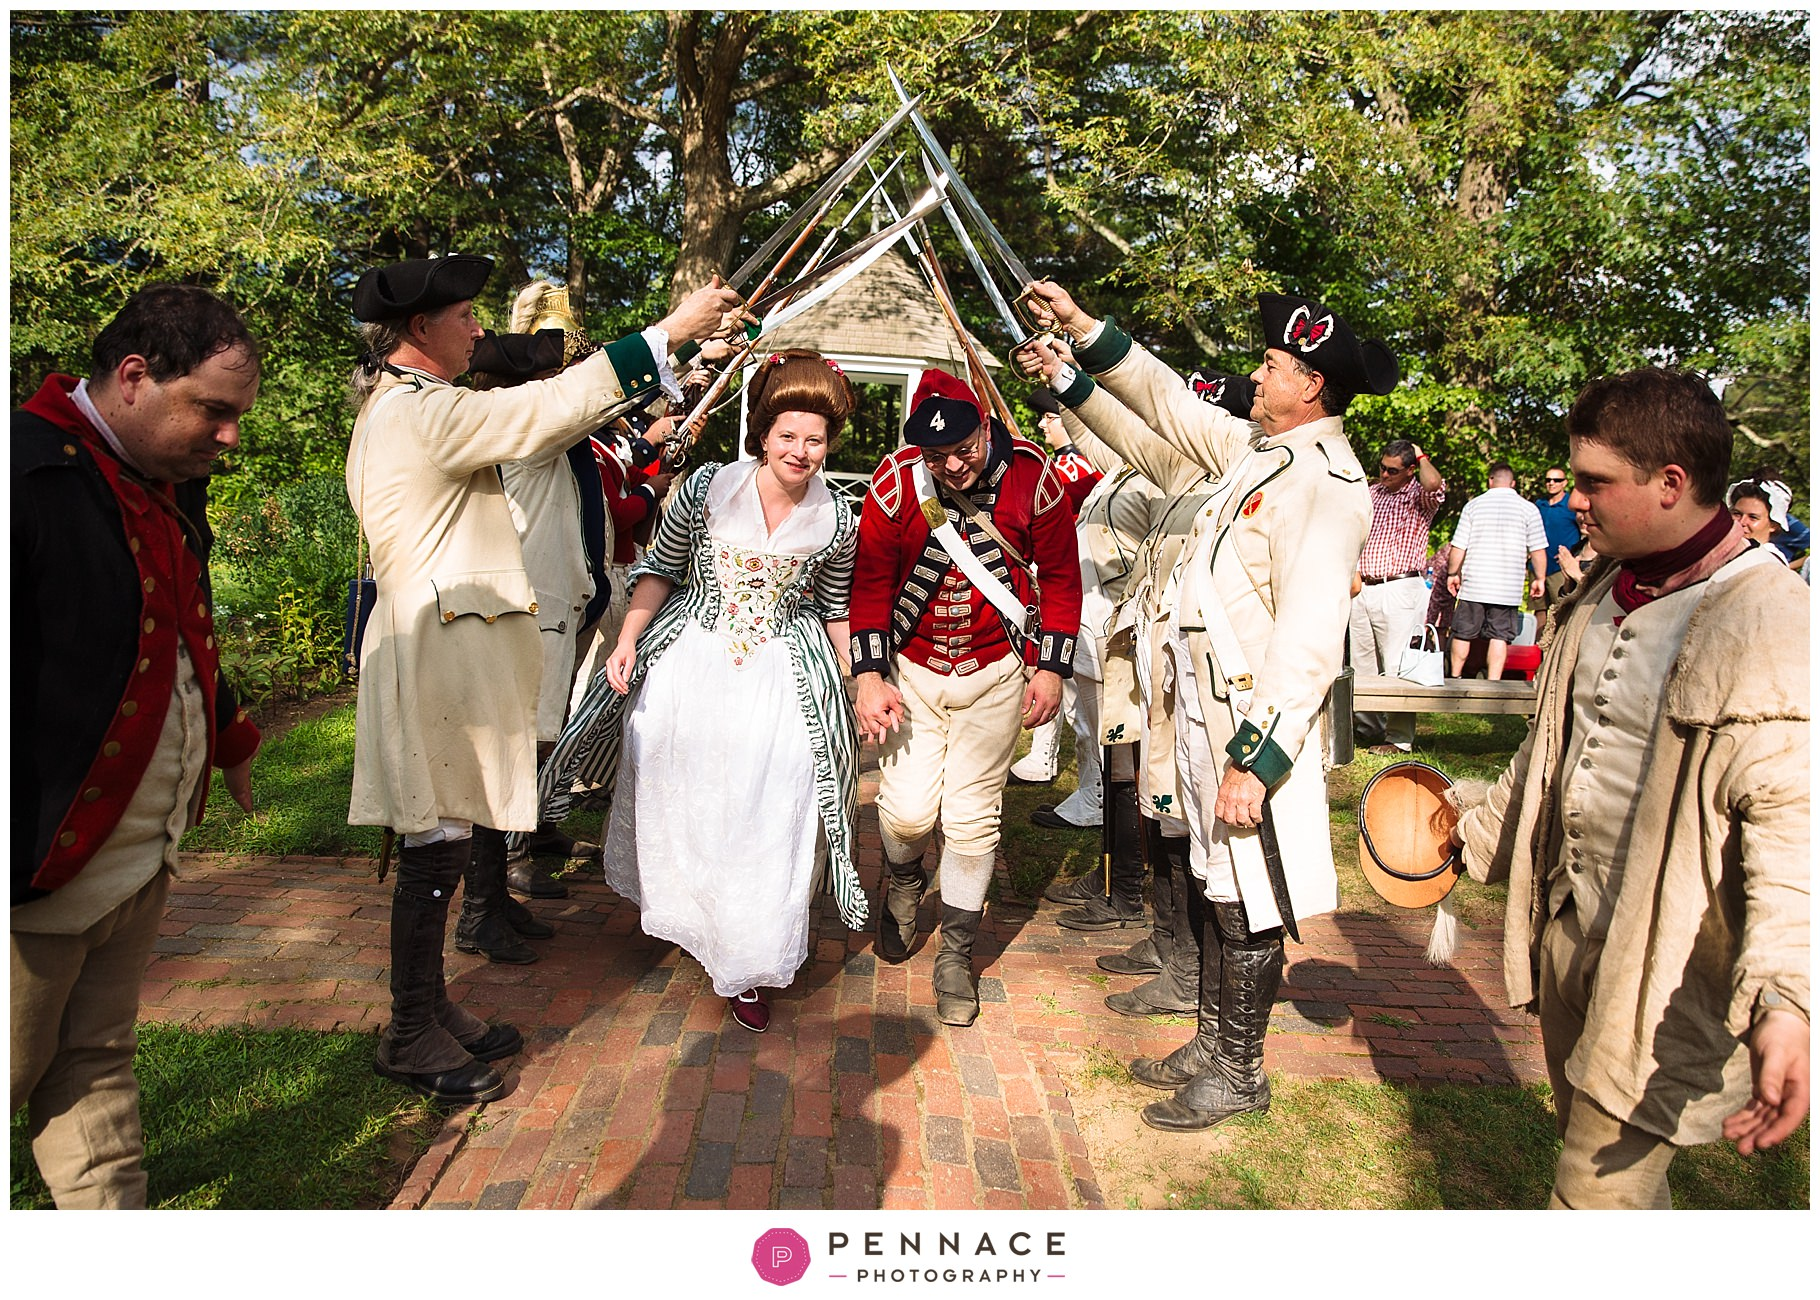 Are You Looking For A Wedding Photographer Your Nyc Contact Me Email Laura Pennacephotography Or Use My Form Which Goes Right